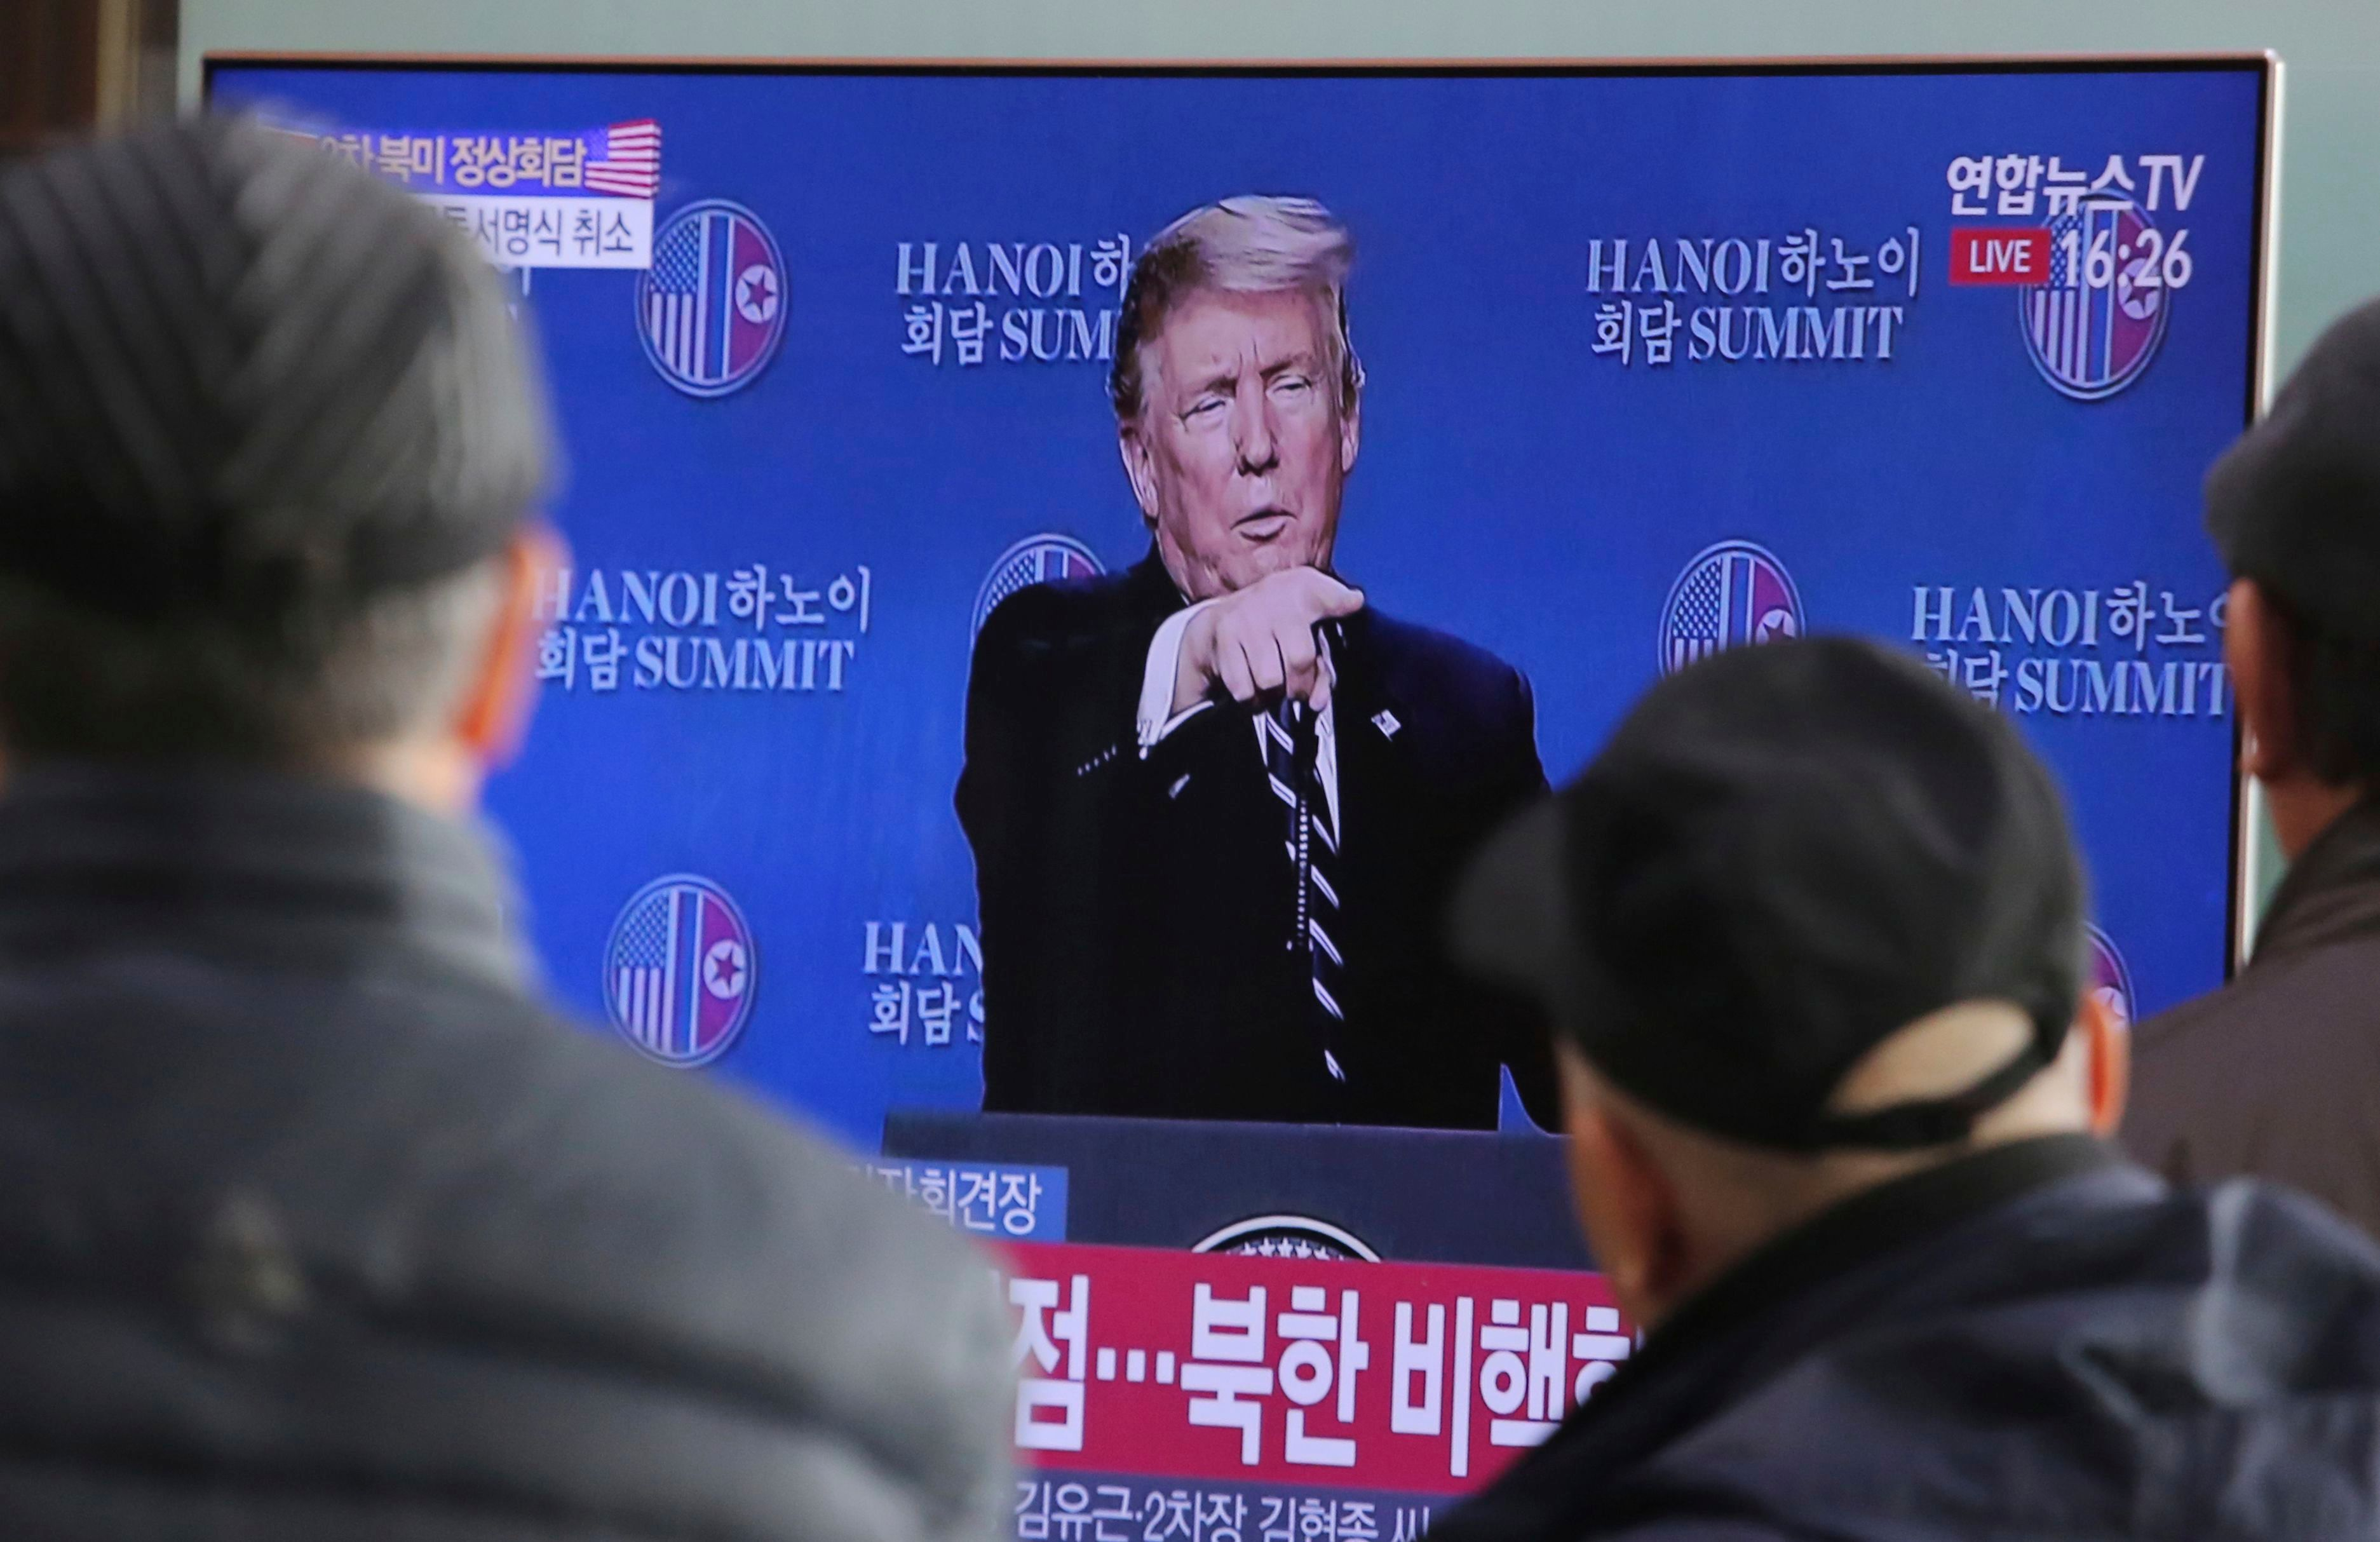 "People watch a TV screen showing U.S. President Donald Trump's press conference during a news program at the Seoul Railway Station in Seoul, South Korea, . The nuclear summit between President Donald Trump and North Korea's Kim Jong Un collapsed Thursday after the two sides failed to reach a deal due to a standoff over U.S. sanctions on the reclusive nation, a stunning end to high-stakes meetings meant to disarm a global threat. The signs read: "" DenuclearizationTrump Kim Summit, Seoul, South Korea - 28 Feb 2019"